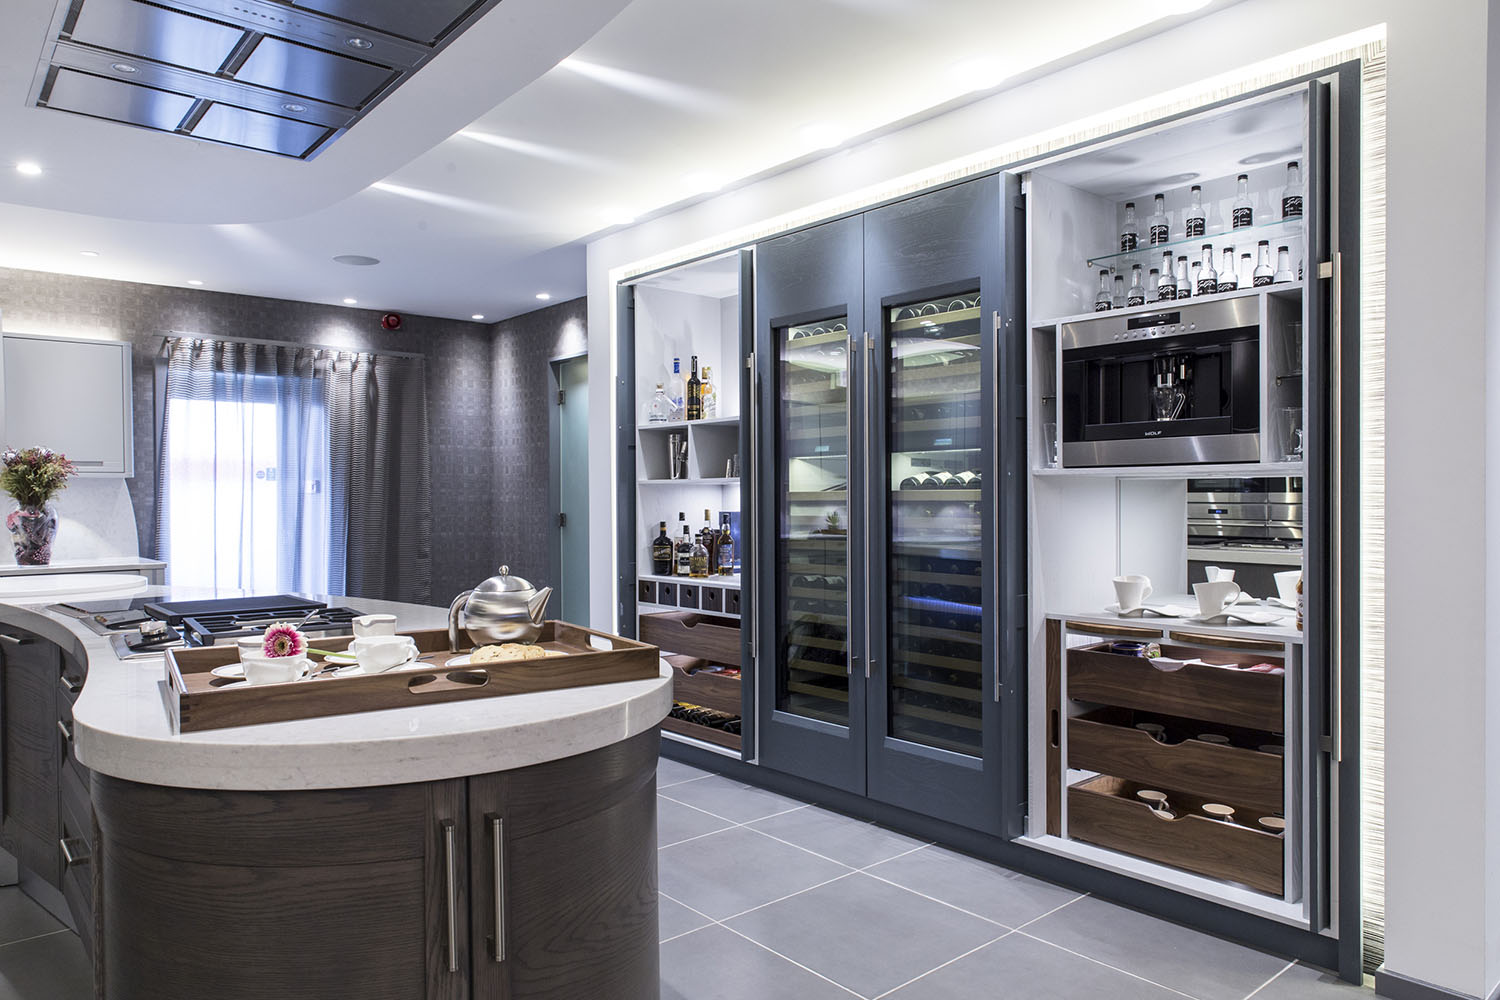 Superbe To Request A Design Consultation With One Of Our Talented Aberdeen Kitchen  Designers Today, Please Fill Out The U0027Get In Touchu0027 Form At The Top Of The  Page.